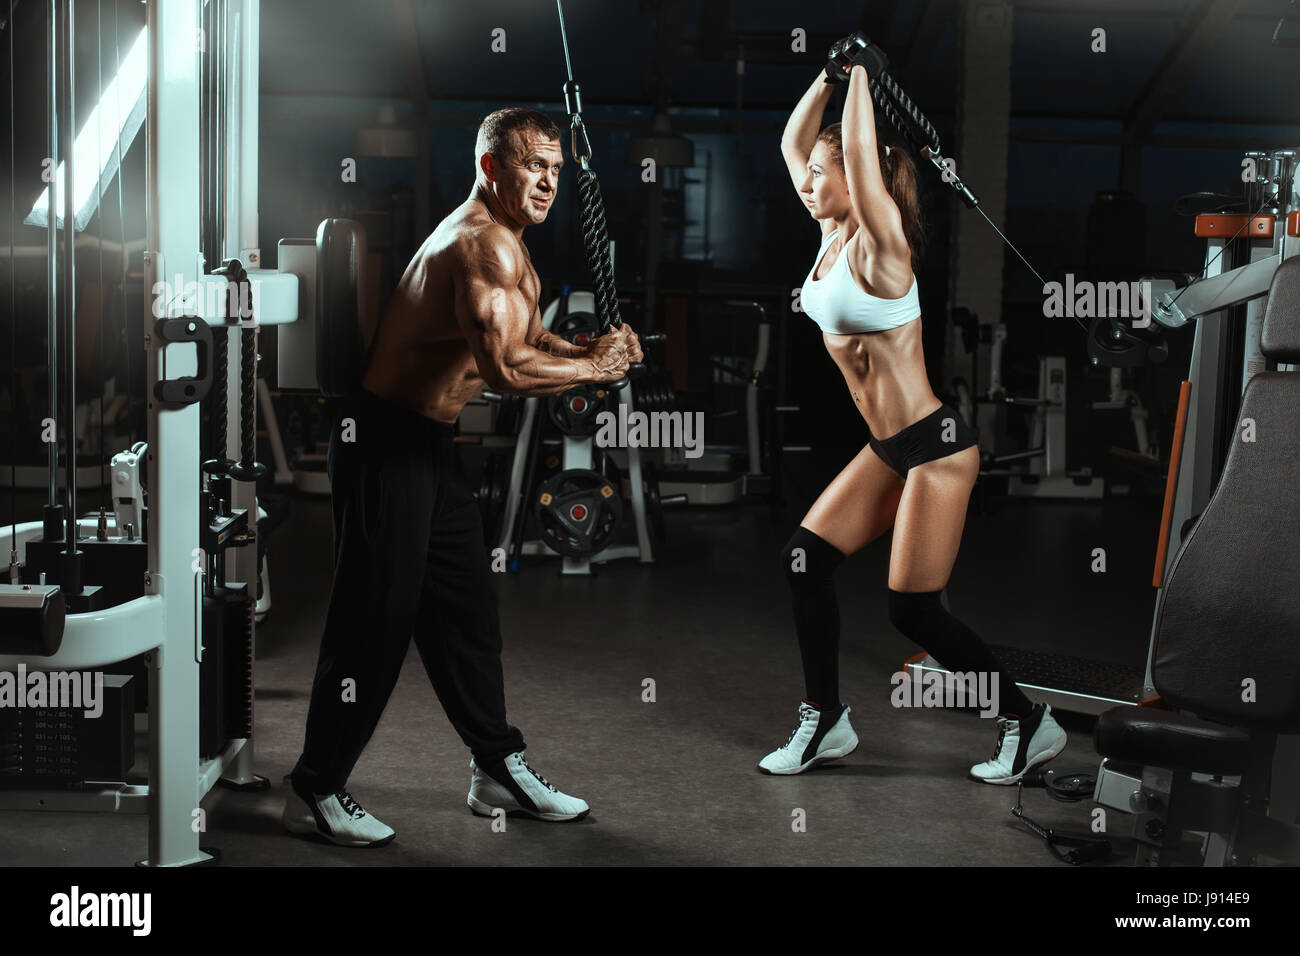 Man and a woman trained muscles in the gym.  They train with machines for bodybuilders. - Stock Image